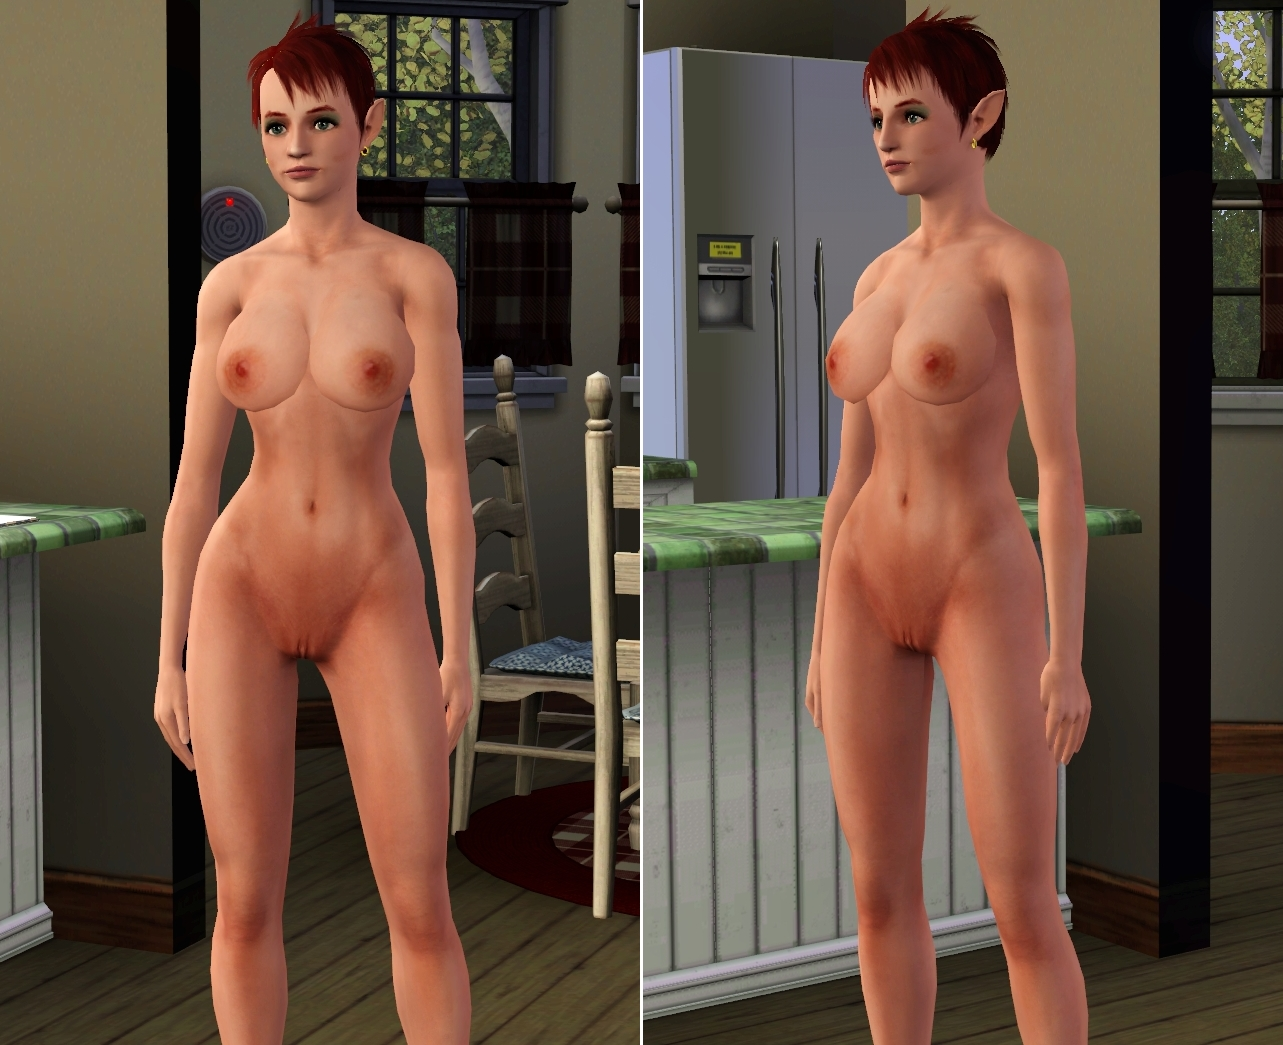 Sims 3 nudes adult photos